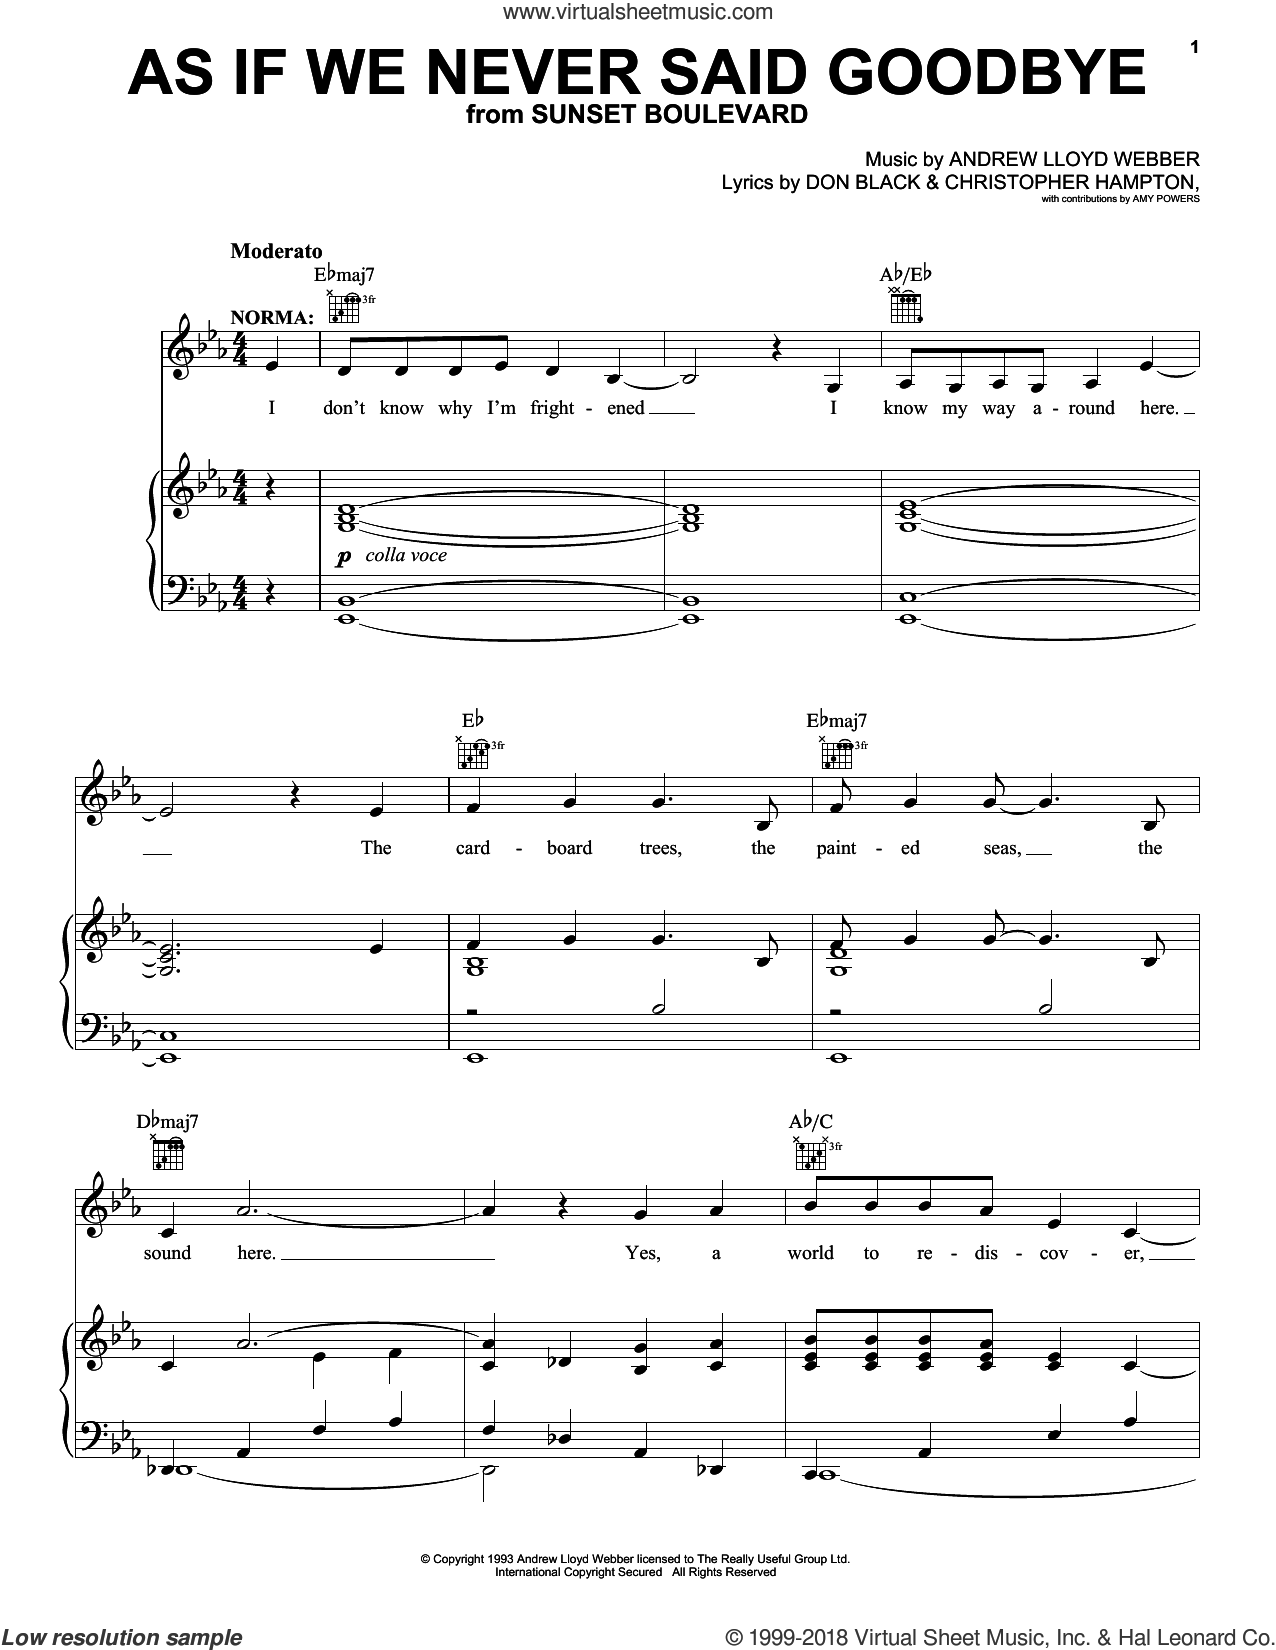 As If We Never Said Goodbye sheet music for voice, piano or guitar by Don Black, Andrew Lloyd Webber and Christopher Hampton. Score Image Preview.